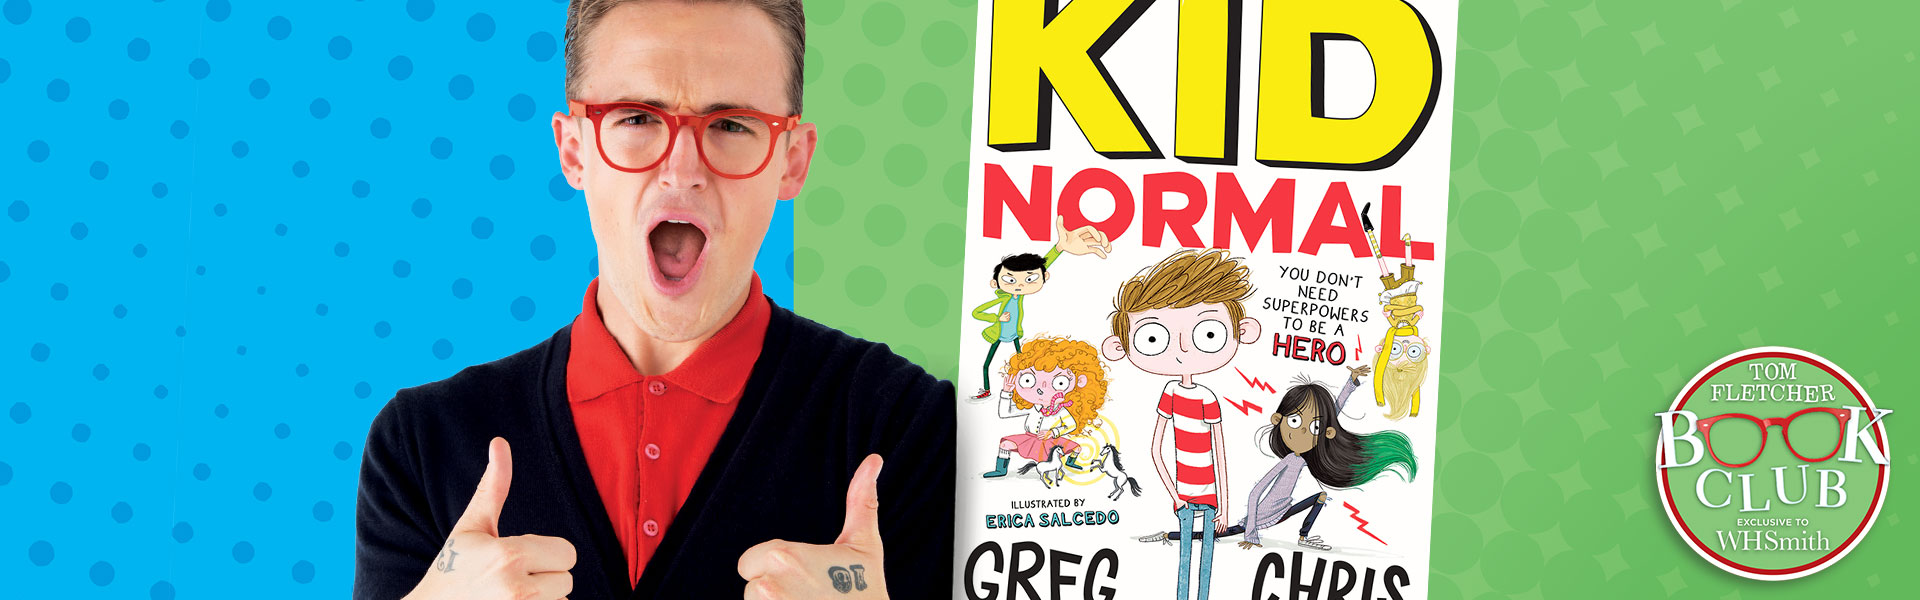 Tom Fletcher Book Club: Kid Normal by Greg James and Chris Smith